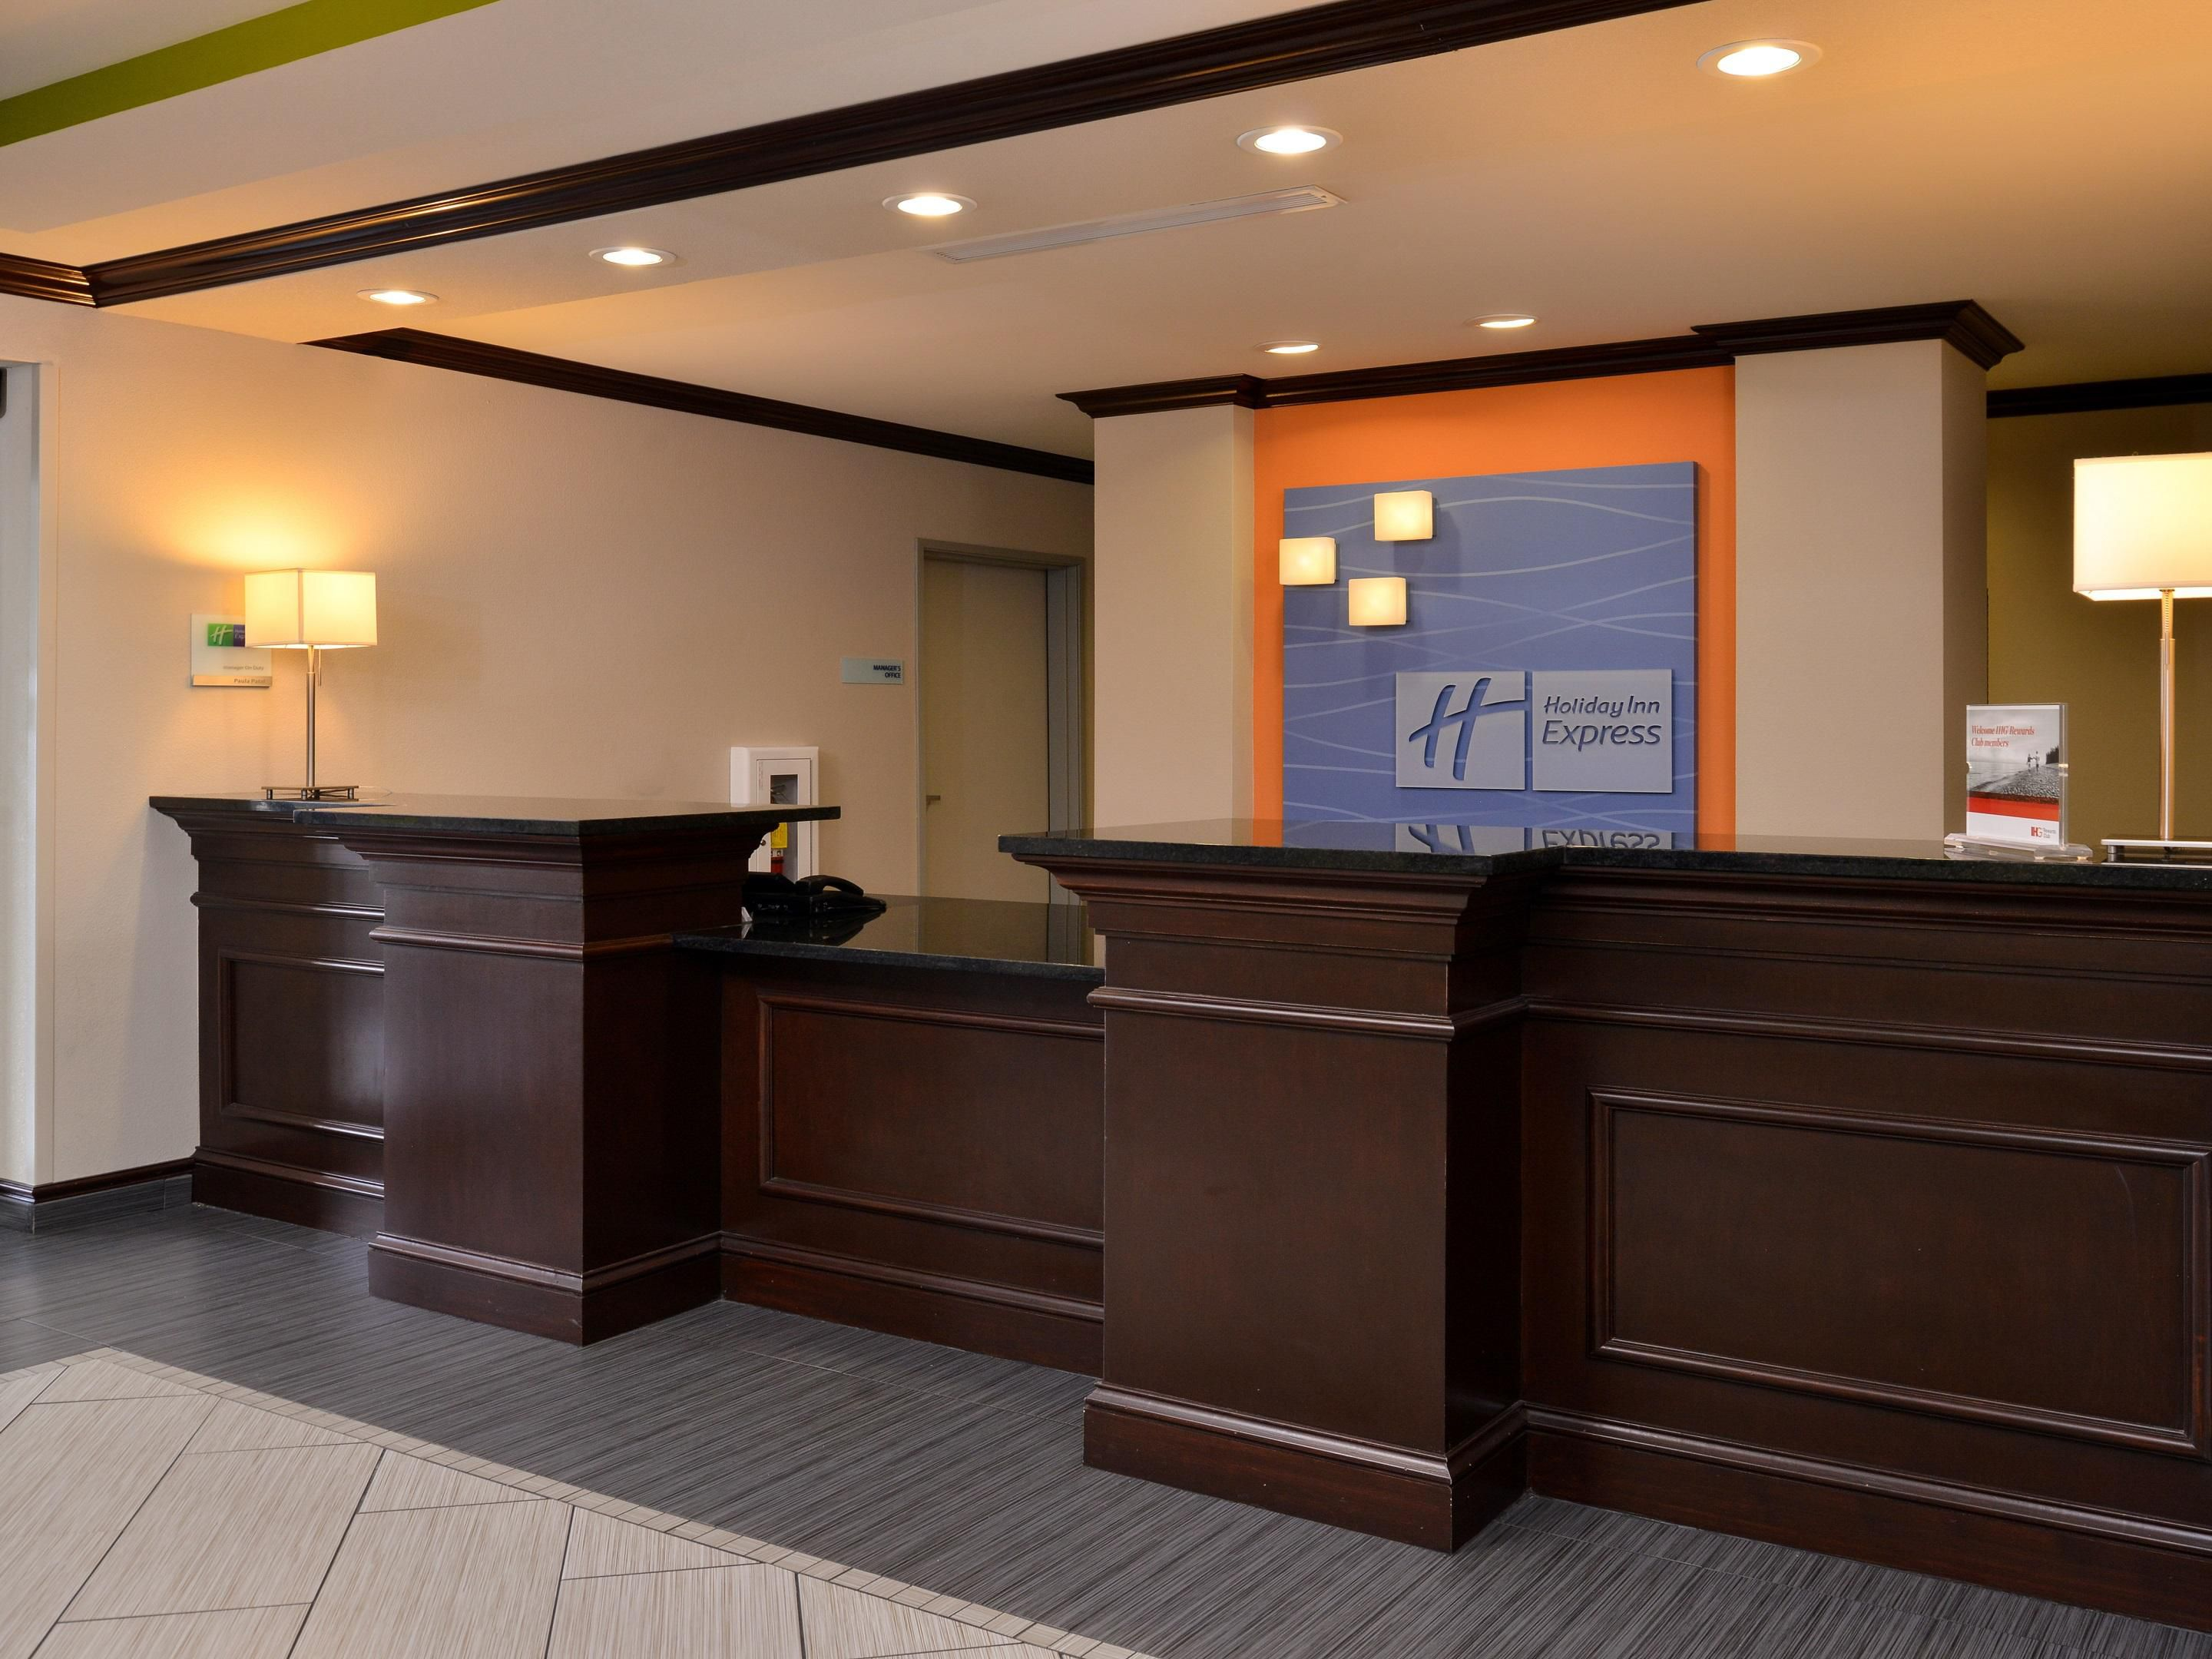 Holiday Inn Express & Suites: Fort Walton Beach Front Desk